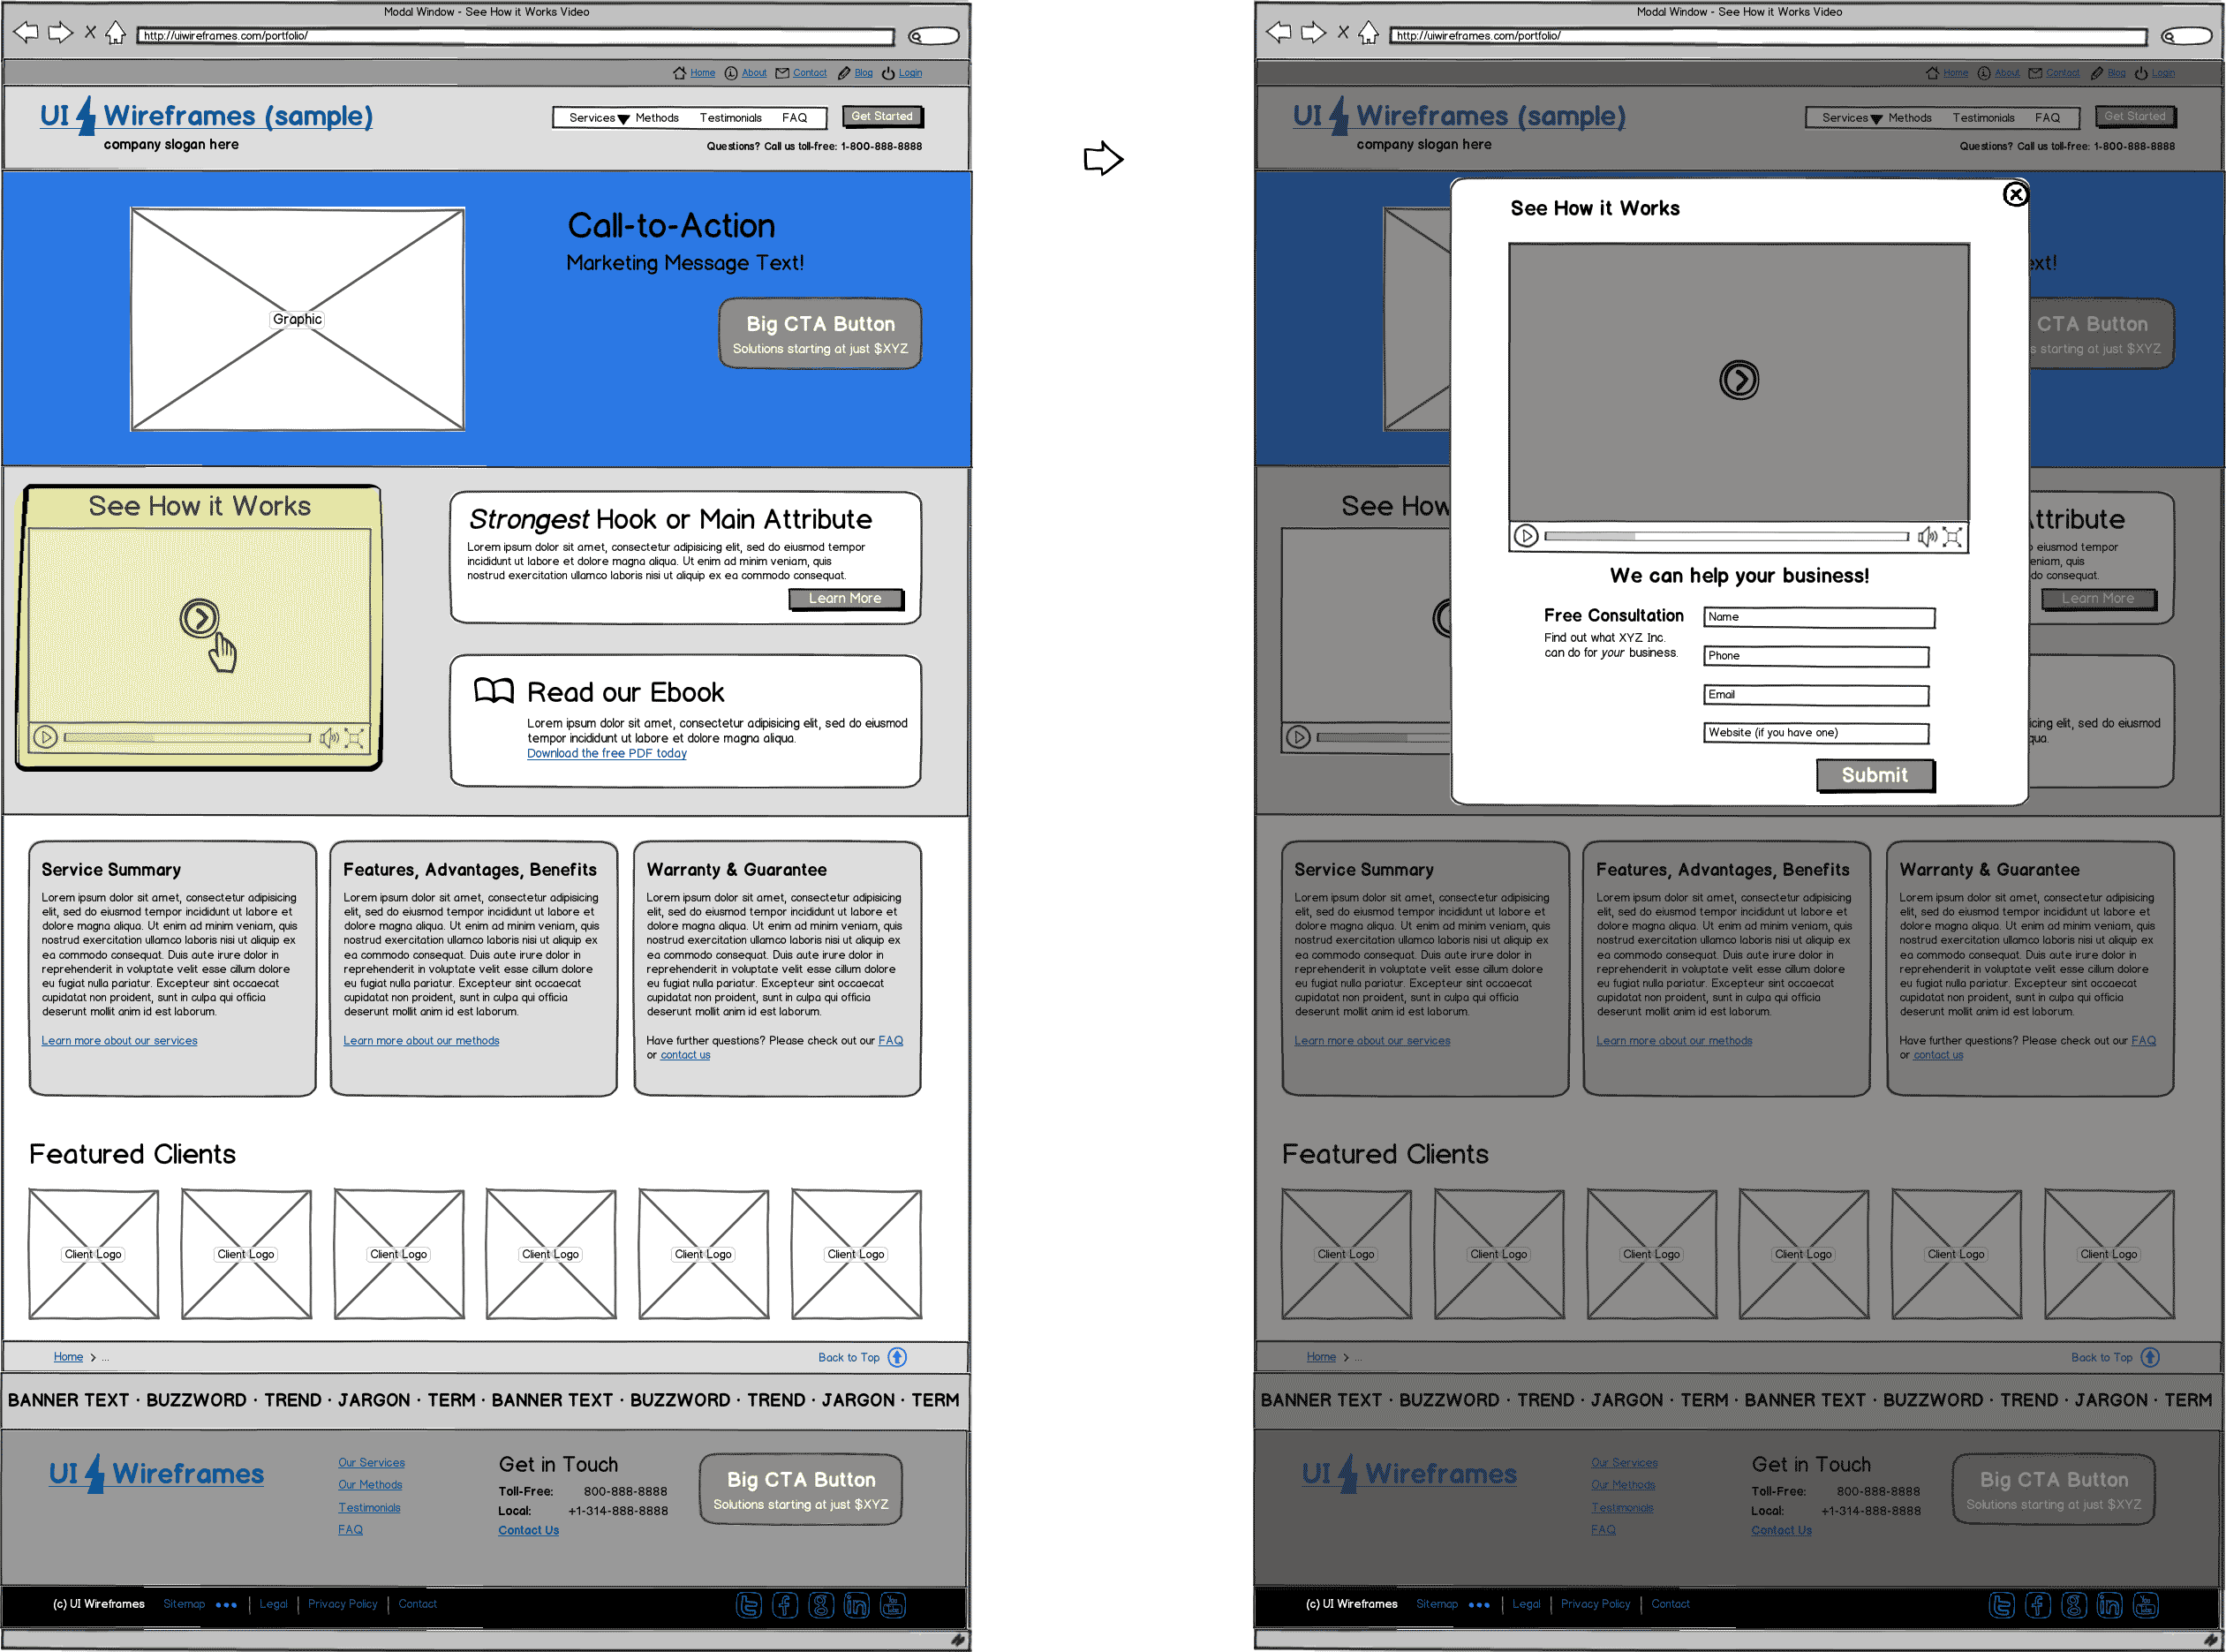 Website Wireframe Sample - UI Wireframes Interaction Package